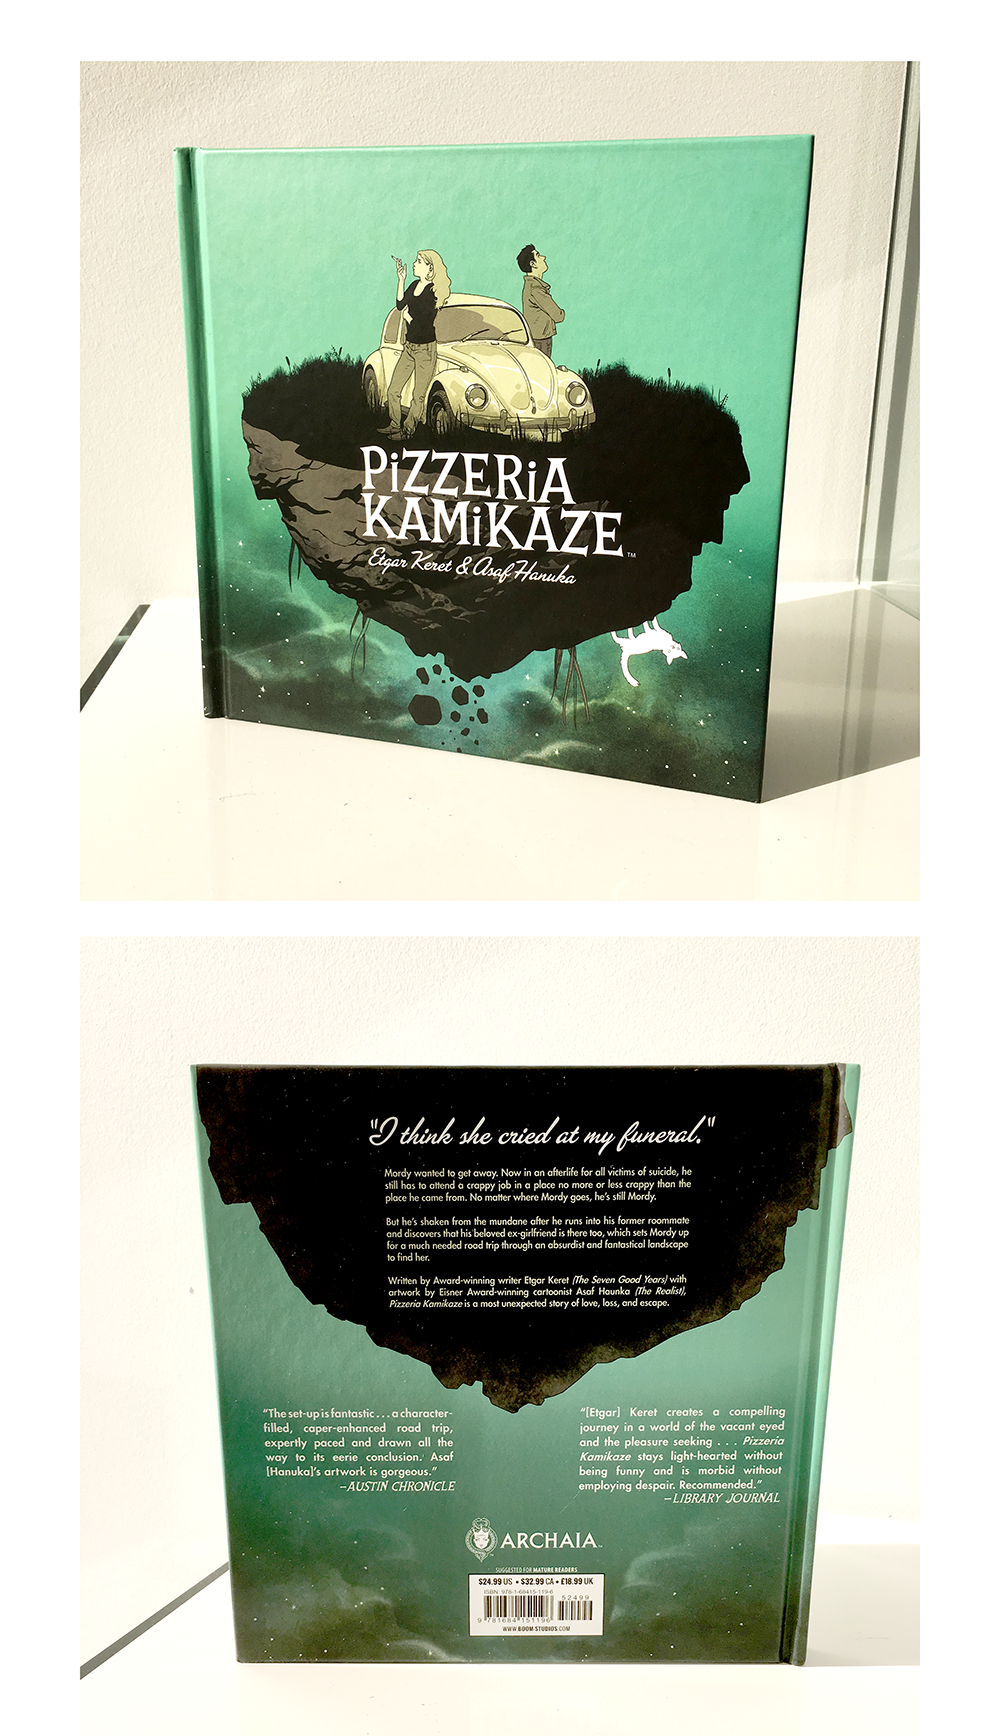 Pizzeria Kamikaze Book Design